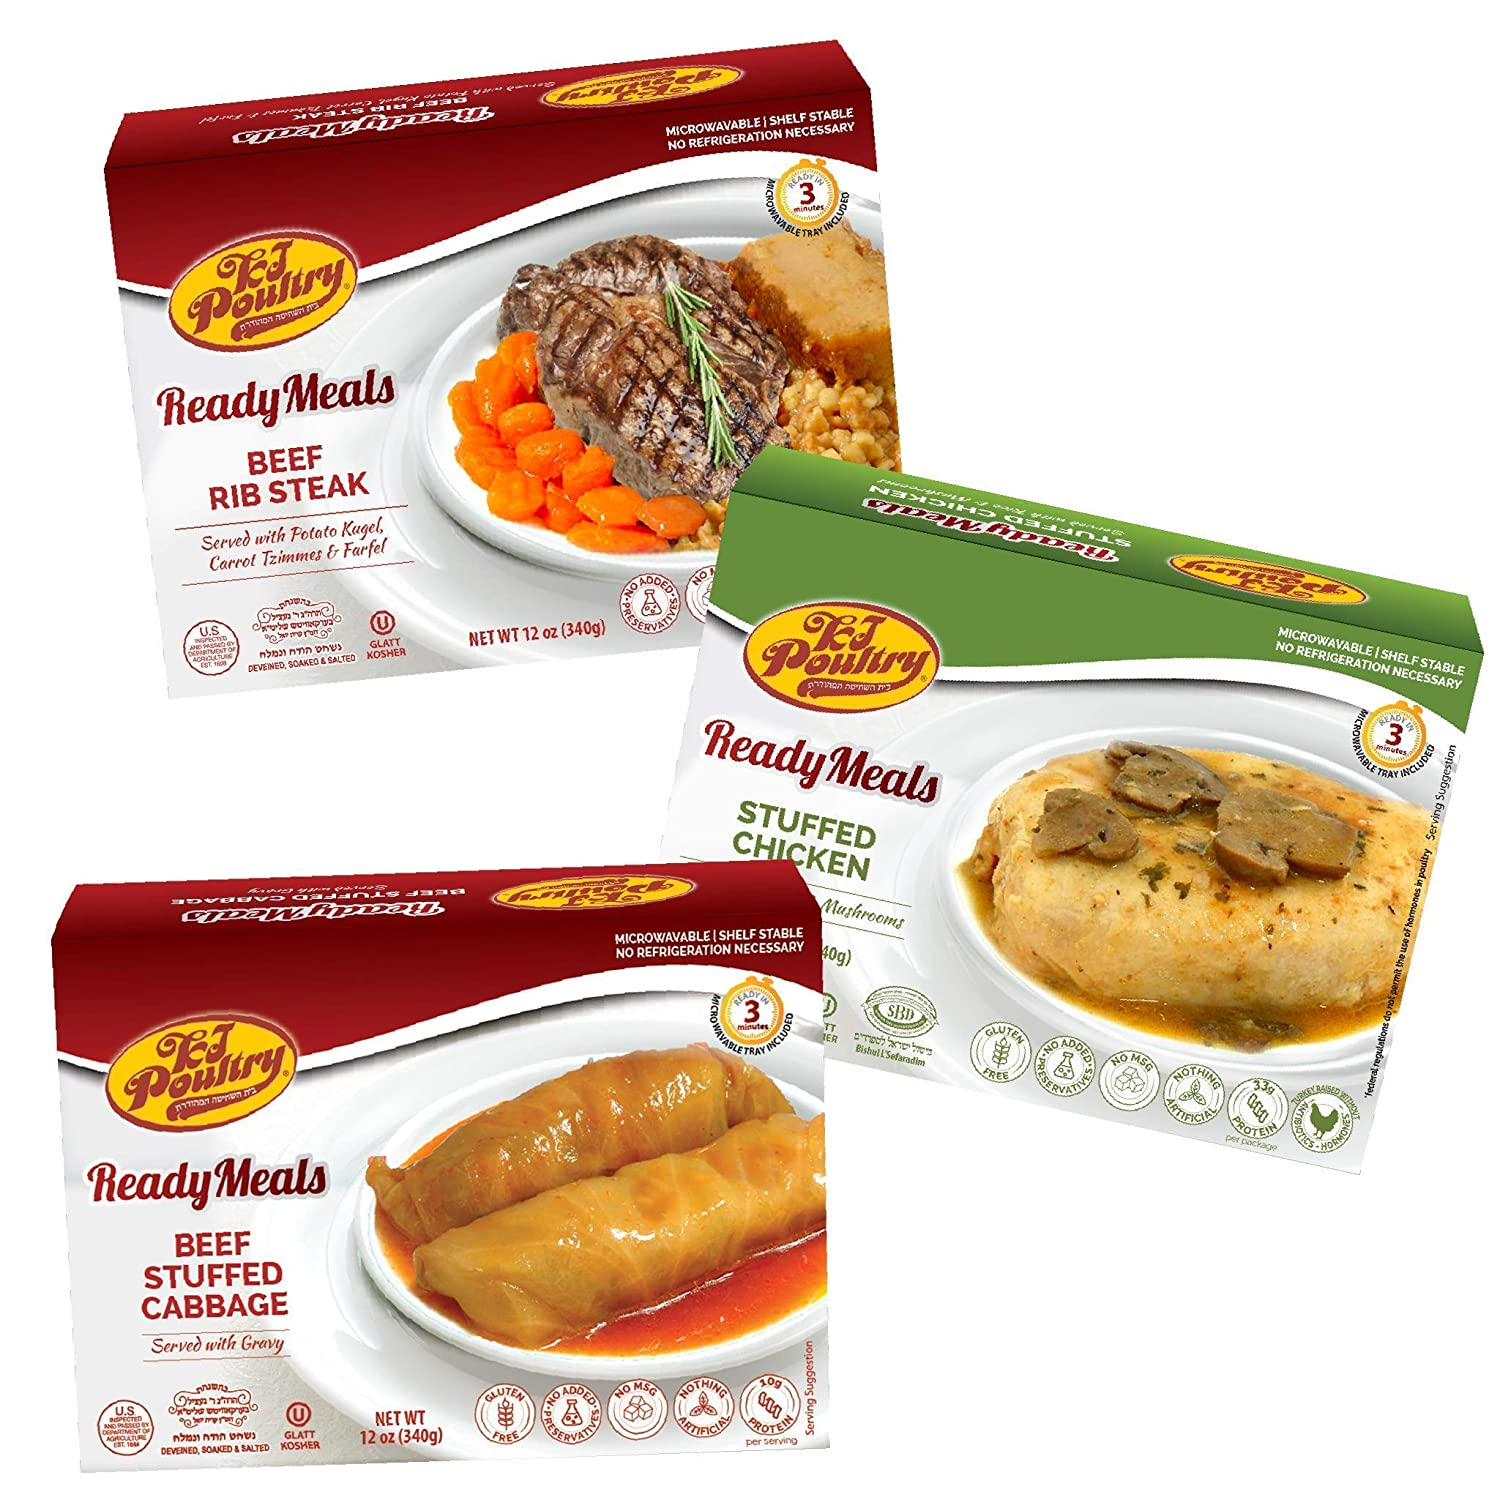 Kosher Mre Meat Meals Ready to Eat, Variety of Beef Rib Steak, Stuffed Cabbage Rolls, Chicken Breast (3 Pack Bundle) - Prepared Entree Fully Cooked, Shelf Stable Microwave Dinner